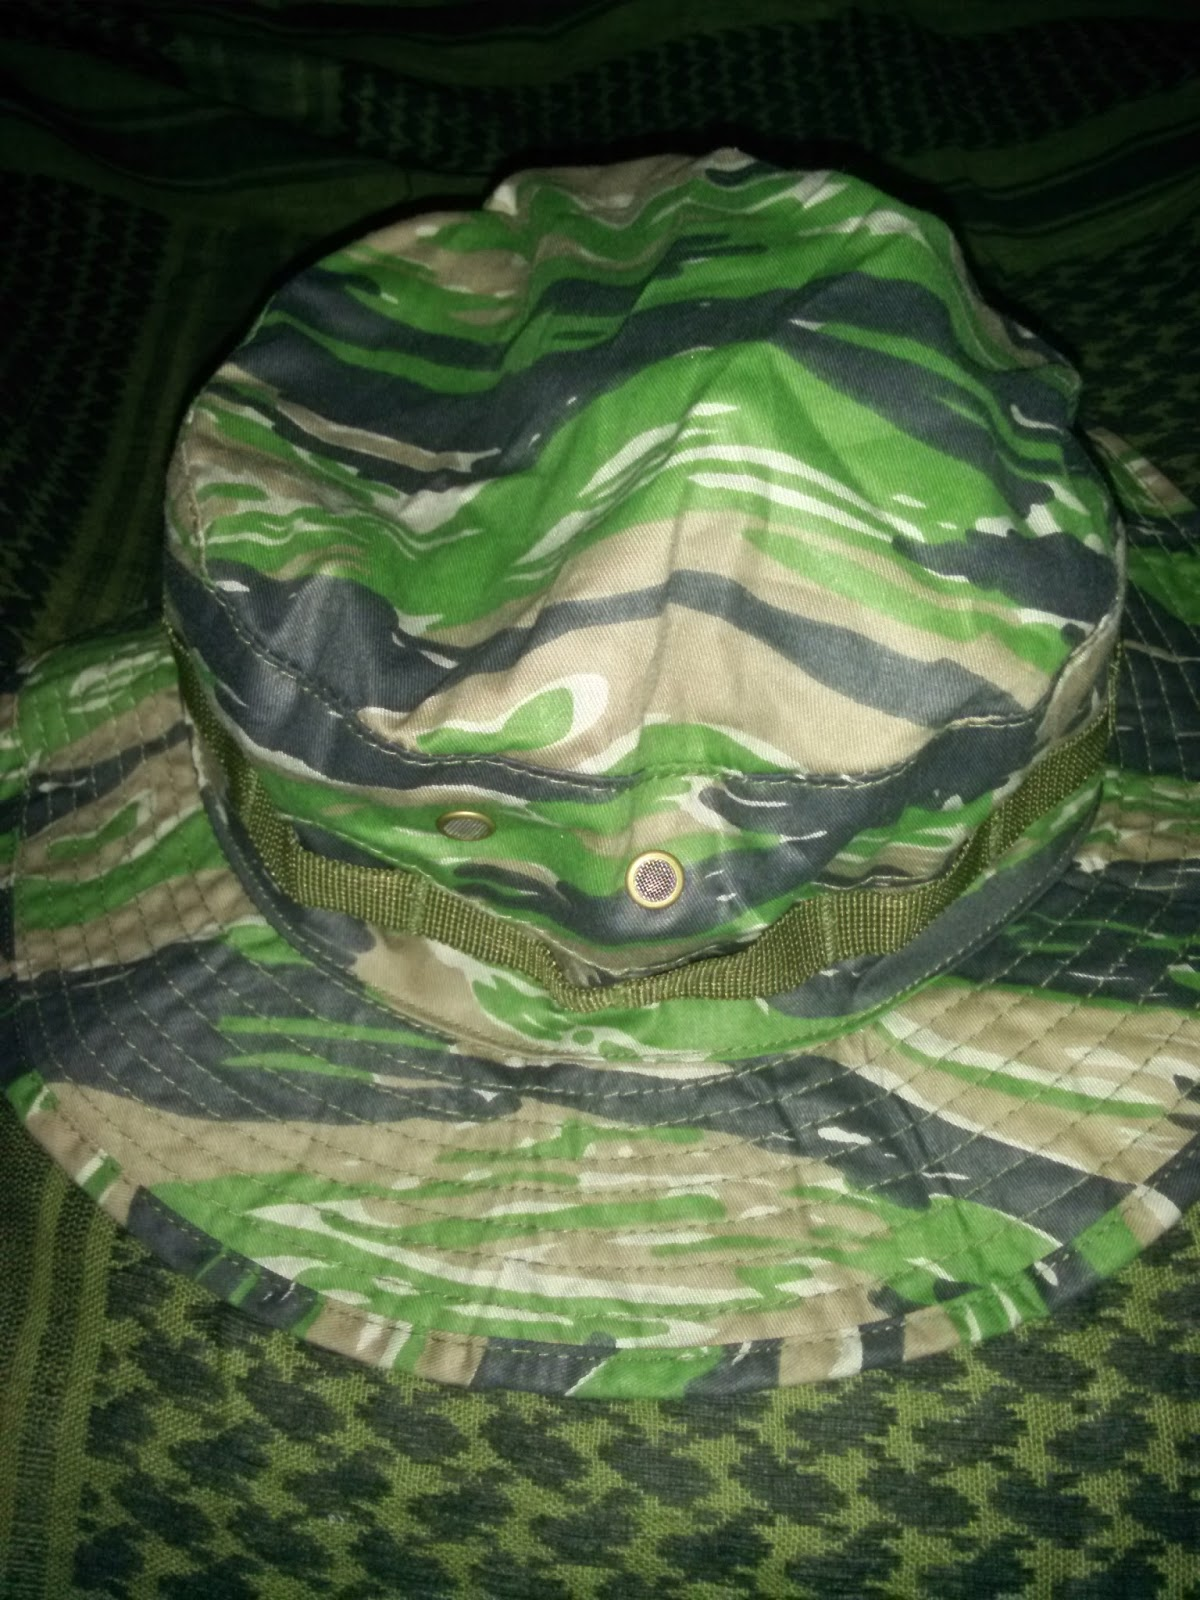 Bonnie hat  The Bonnie hat made by RAP4 is essentially like the standard  military issue Boonie hat. The major difference is in the chin strap. bf9bd050b2b3